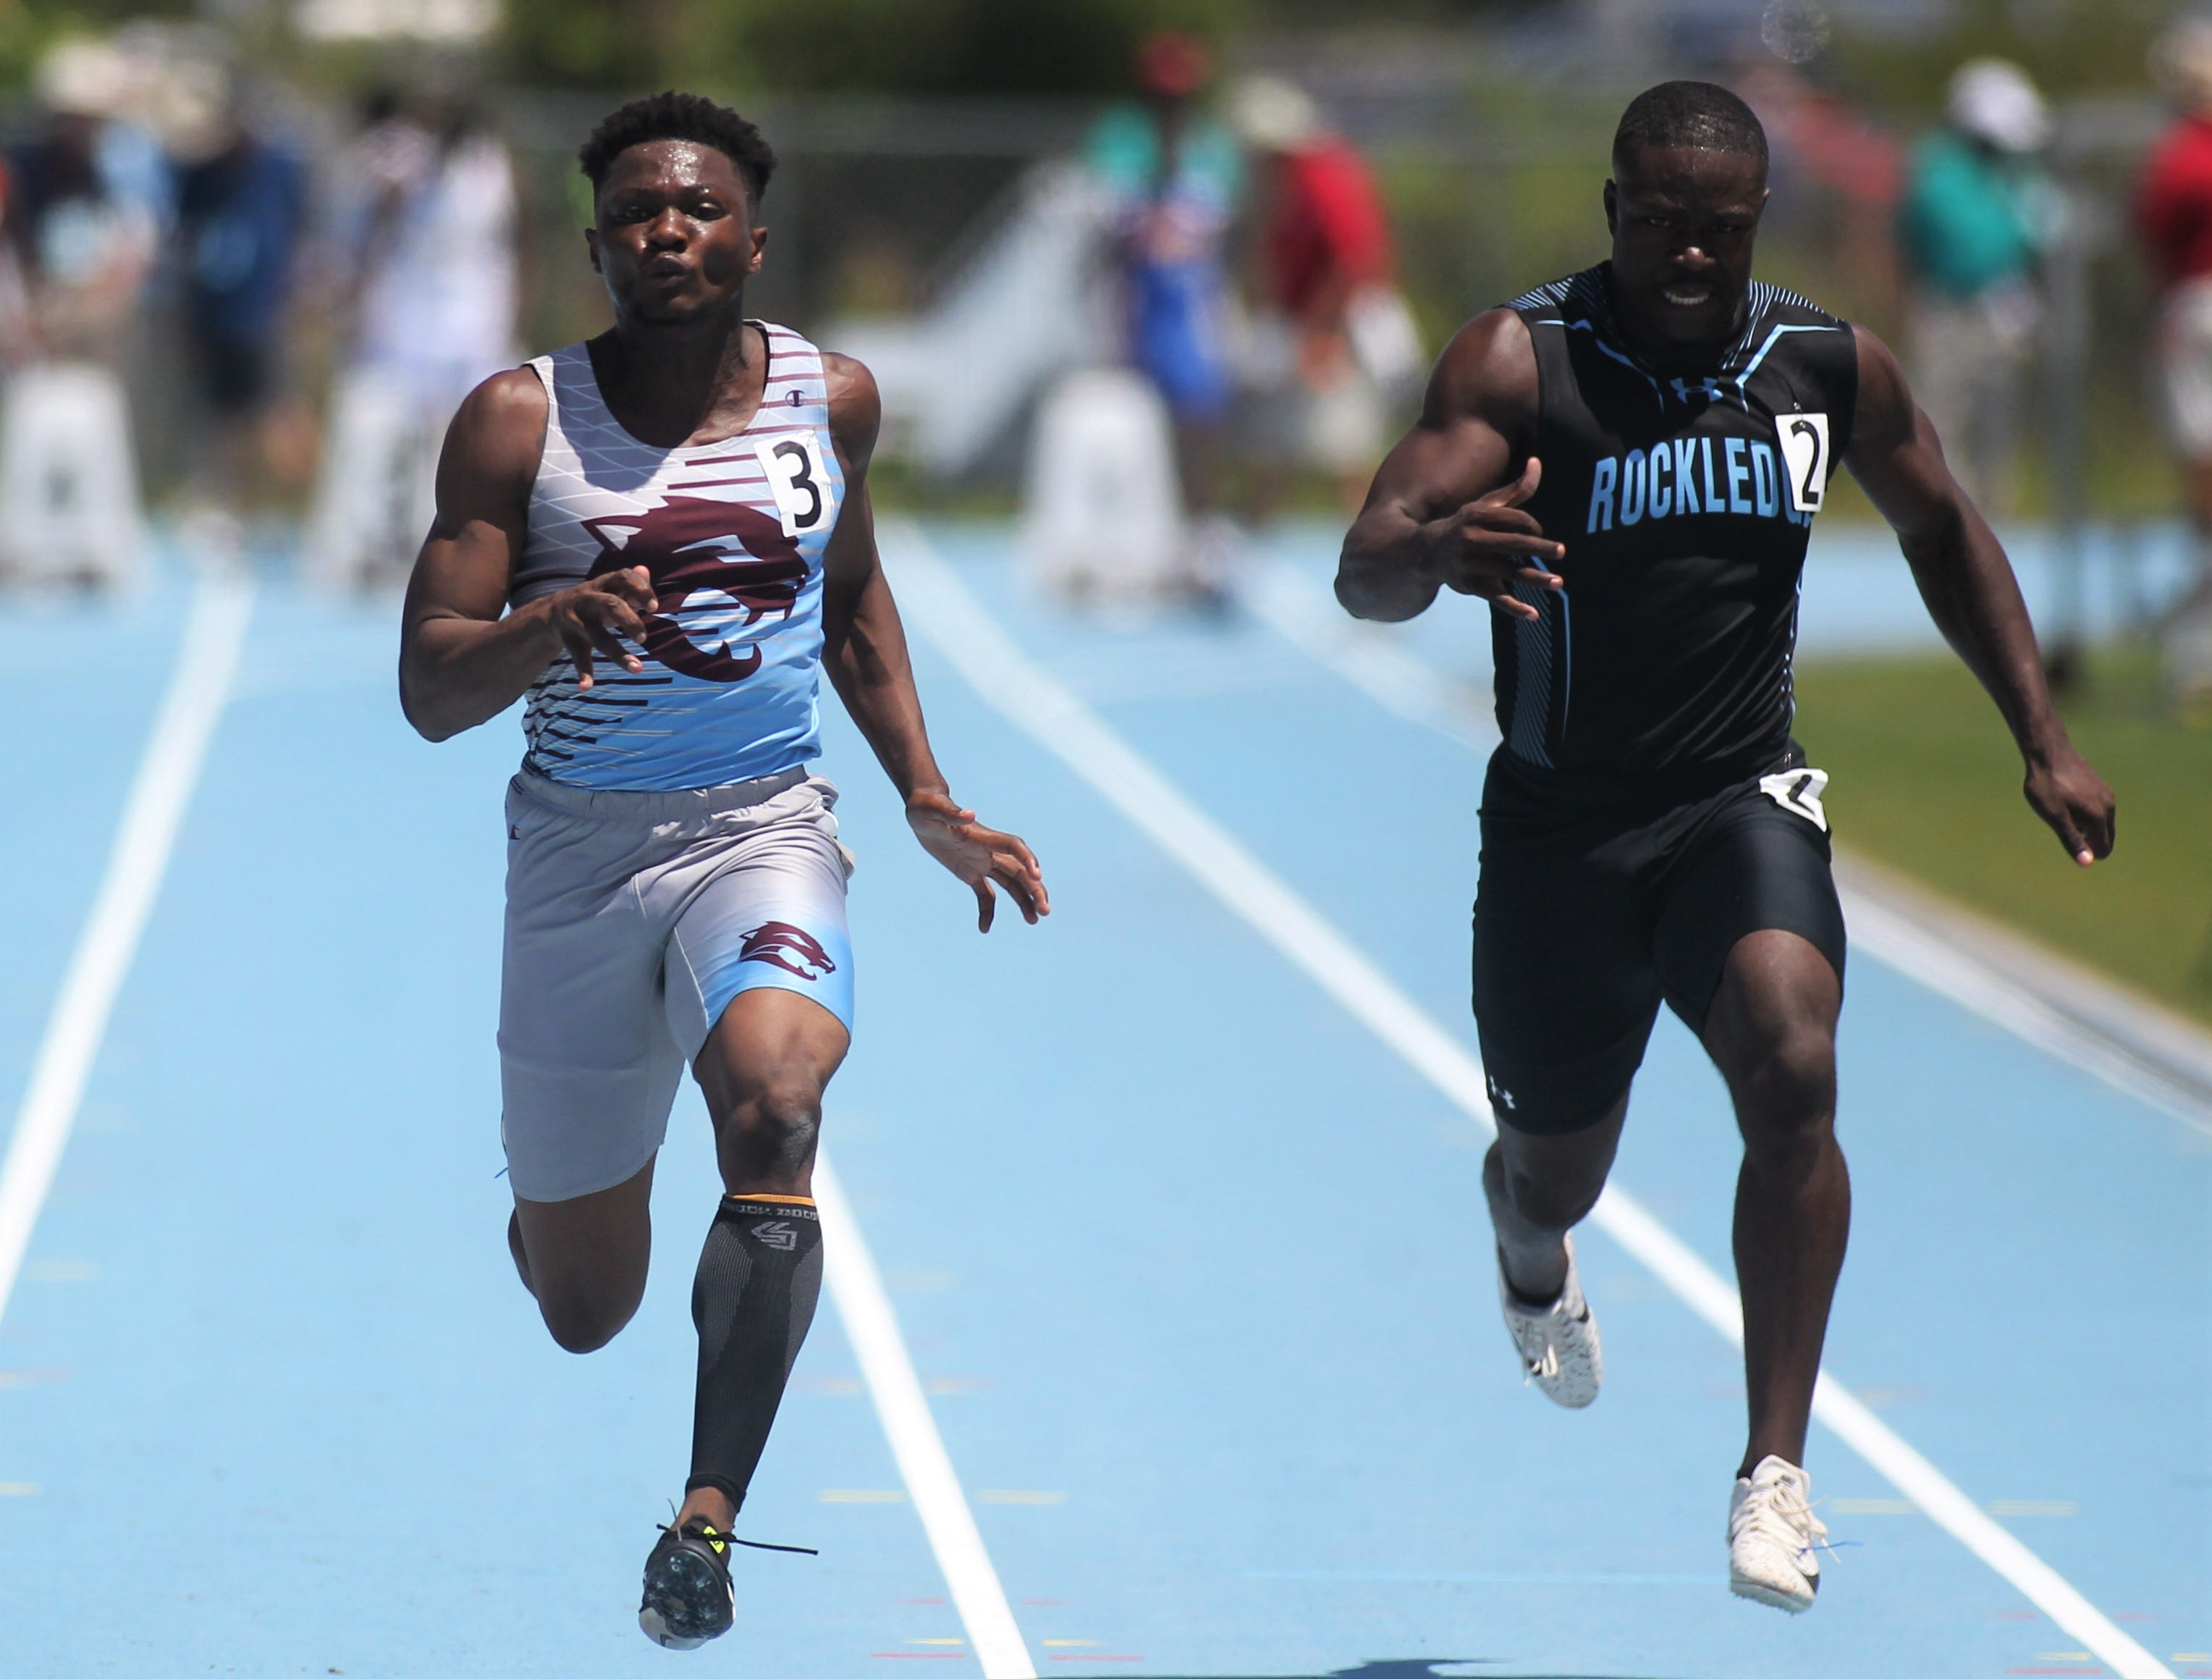 Gadsden County junior Dequavious Charleston finished fifth in the Class 2A 100m dash, next to Rockledge senior Jordan Young-Humphrey who was seventh, during the FHSAA Track and Field State Championships at UNF's Hodges Stadium in Jacksonville on May 4, 2019.